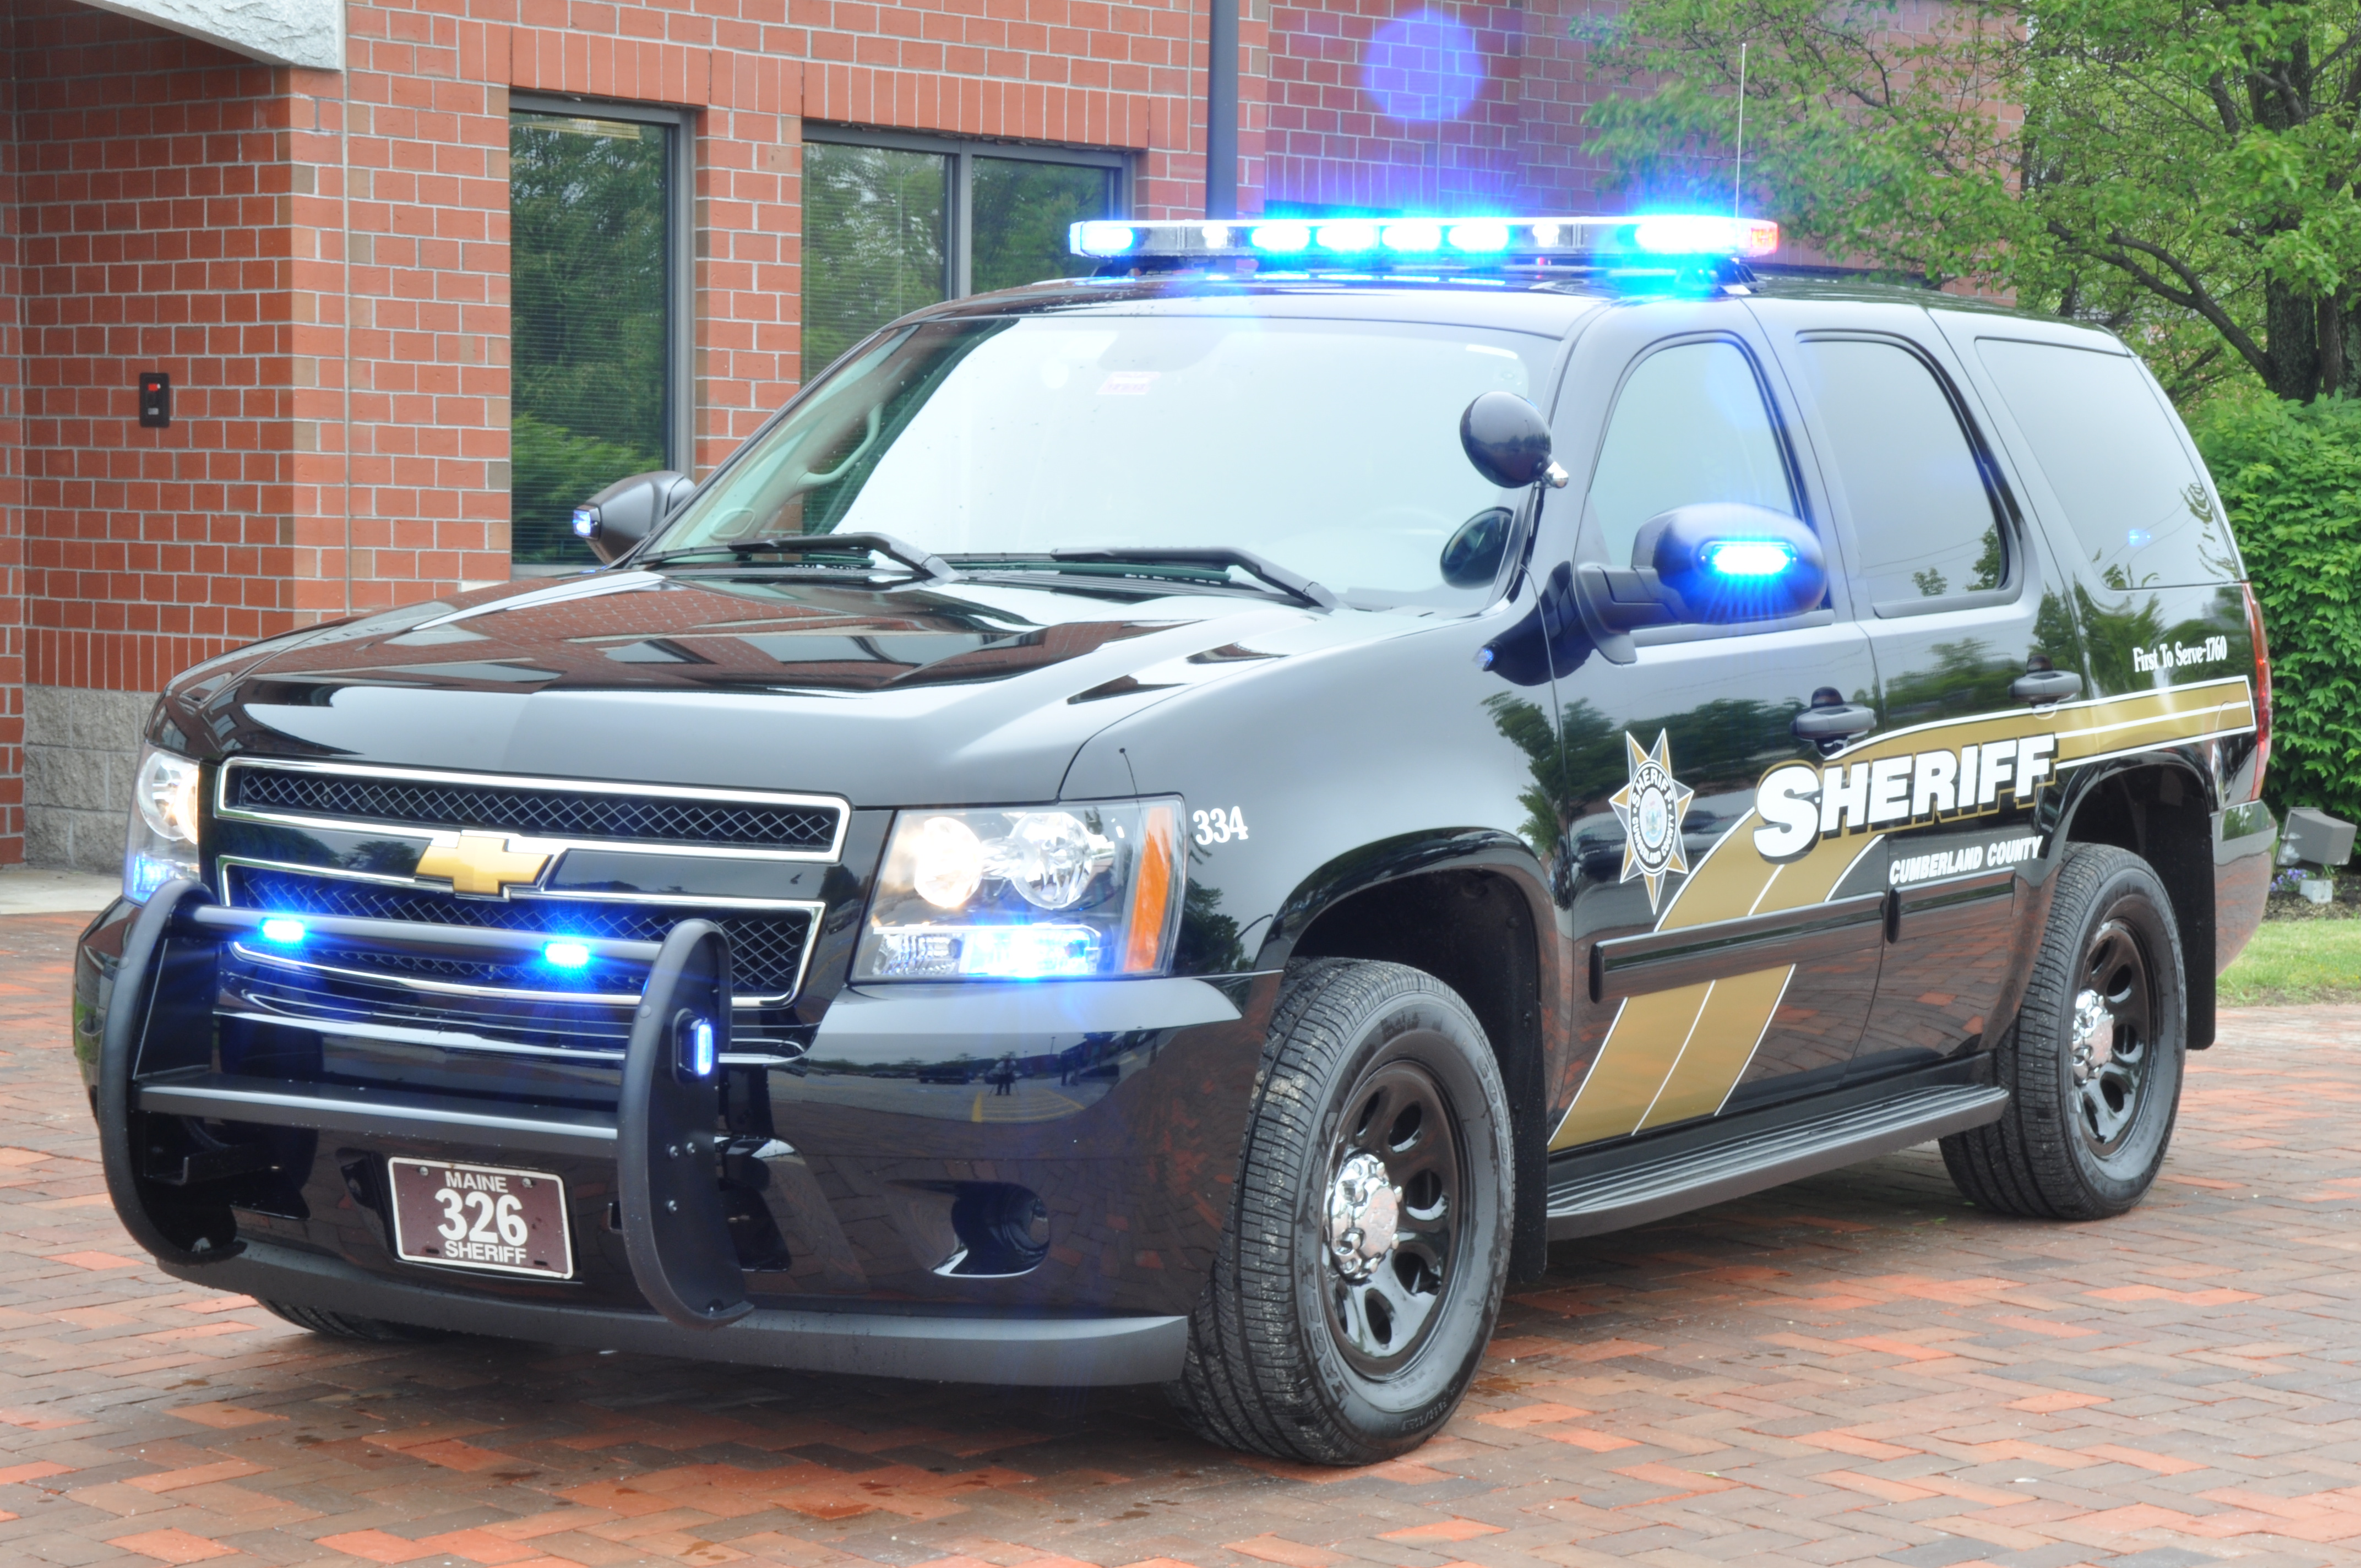 Prosecuting Teams | Cumberland County, ME - Official Website